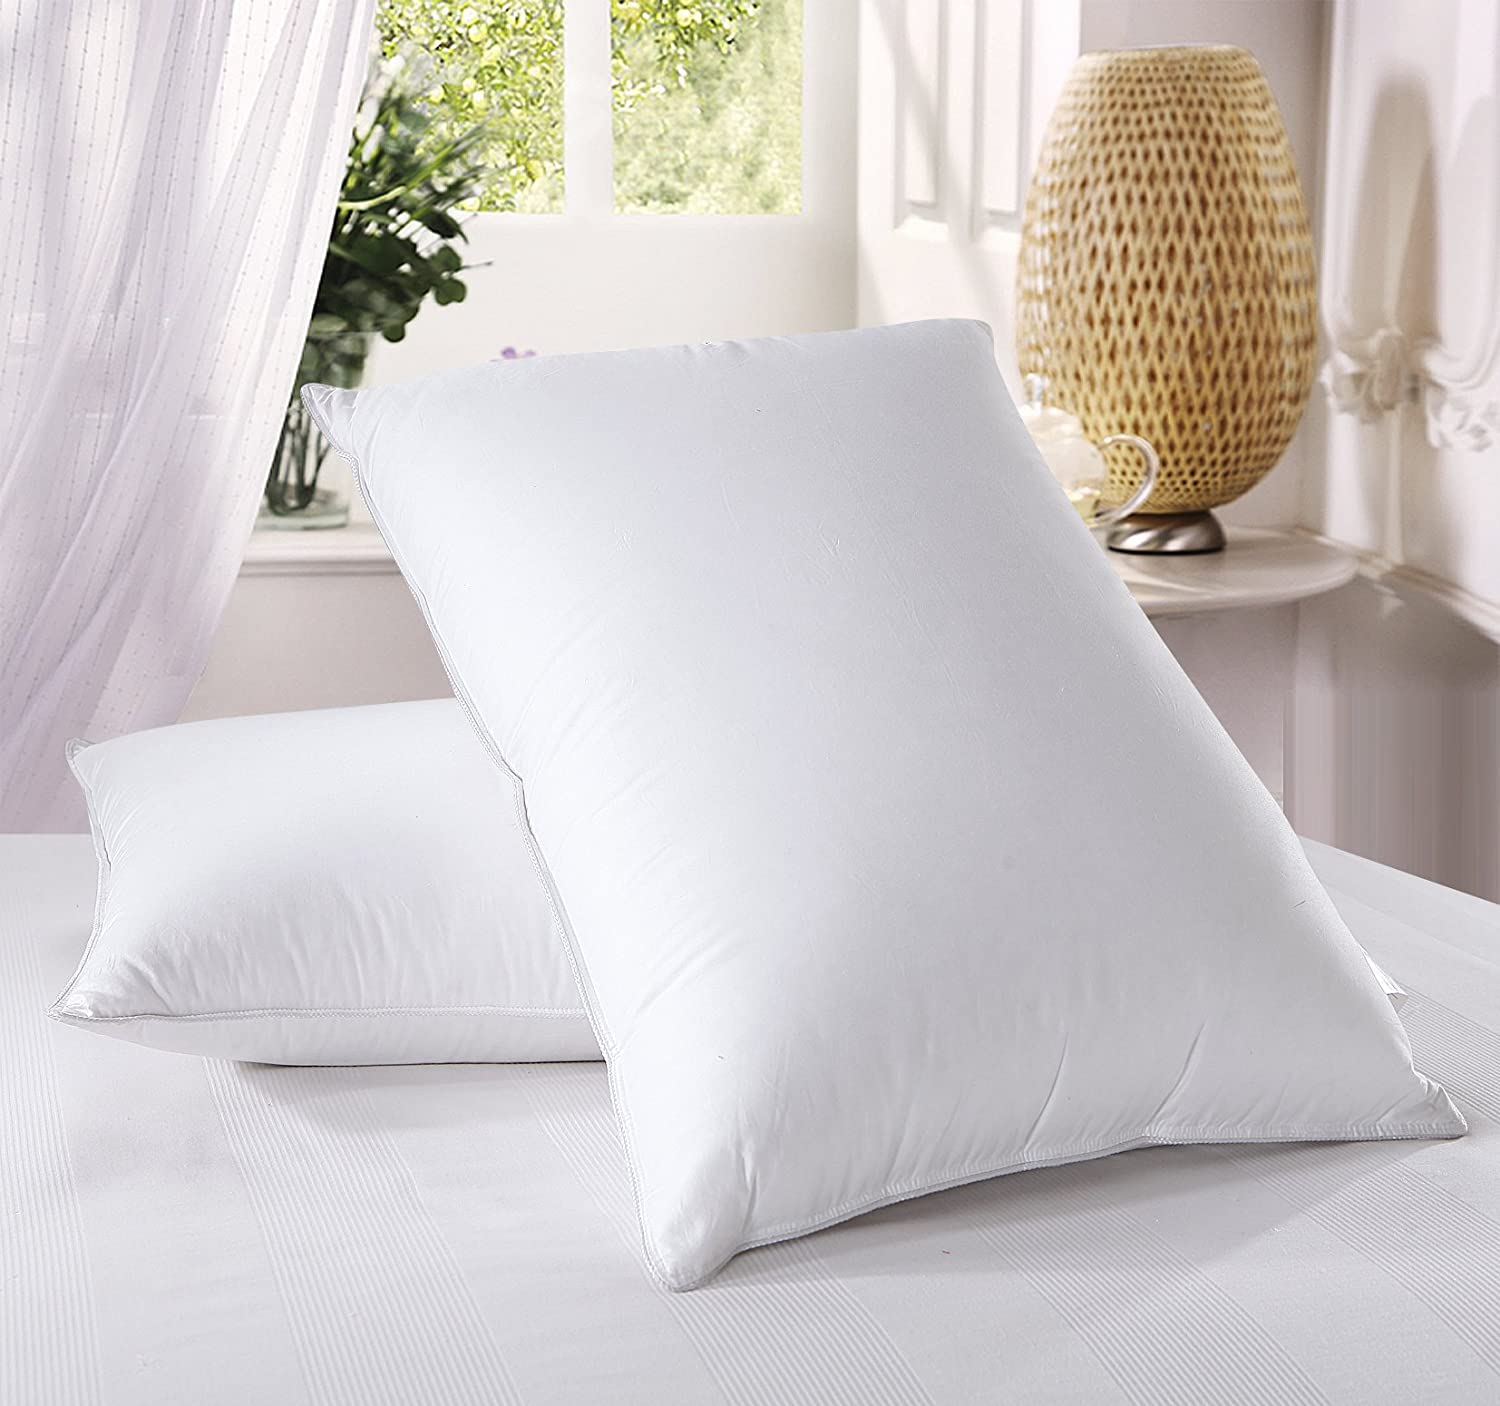 Royal Hotel Abripedic Medium Firm Down Pillow (Best Down King Size Pillow)